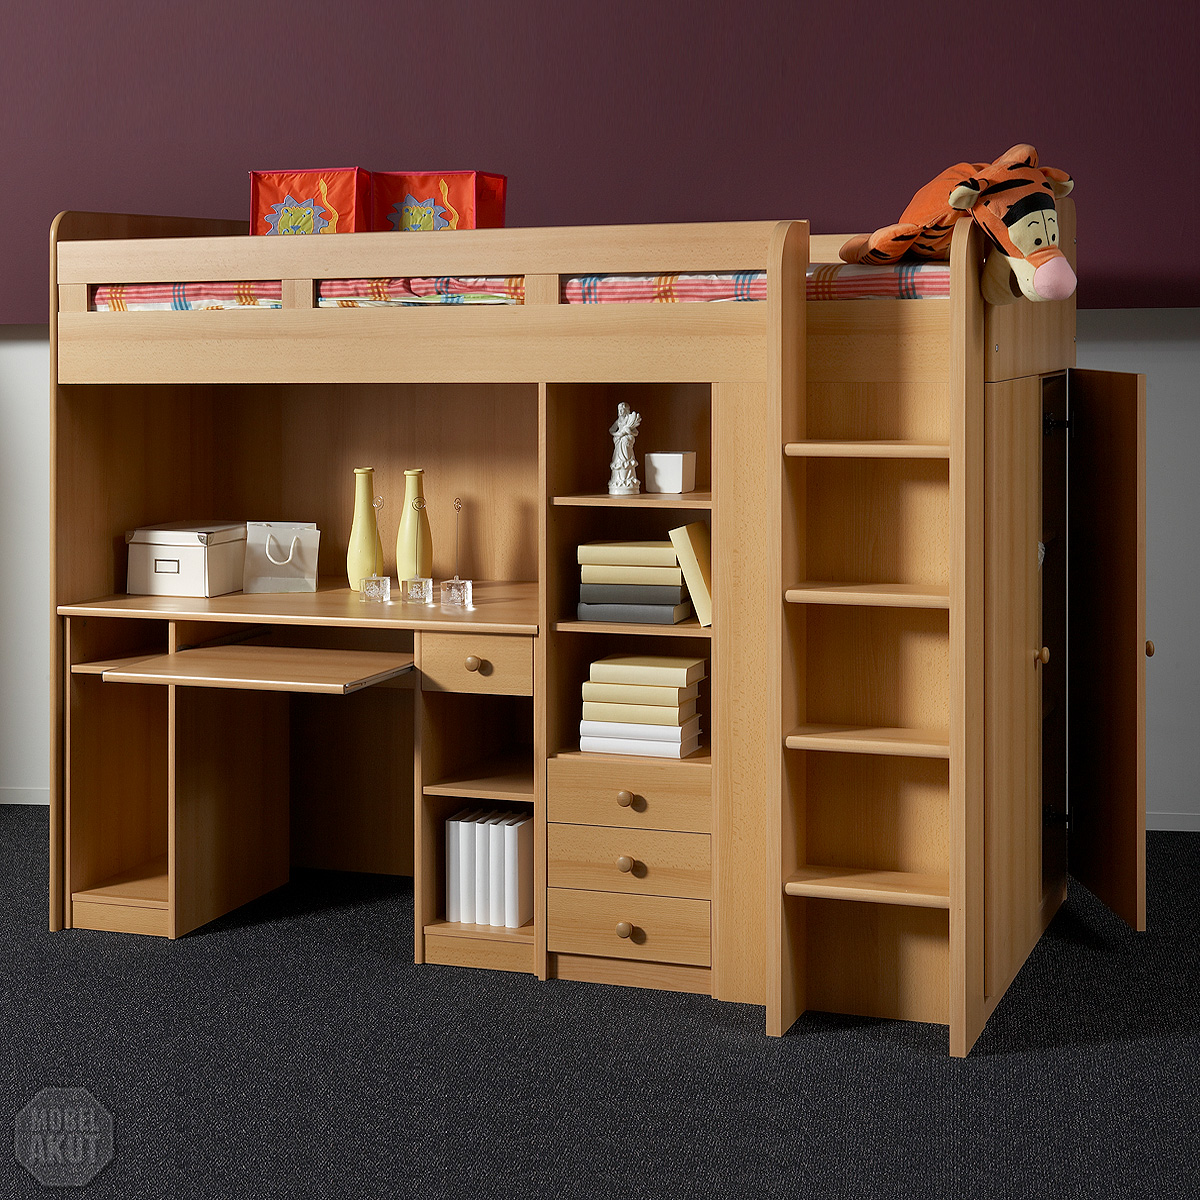 hochbett unit etagenbett kinderbett bett in buche 90x200. Black Bedroom Furniture Sets. Home Design Ideas